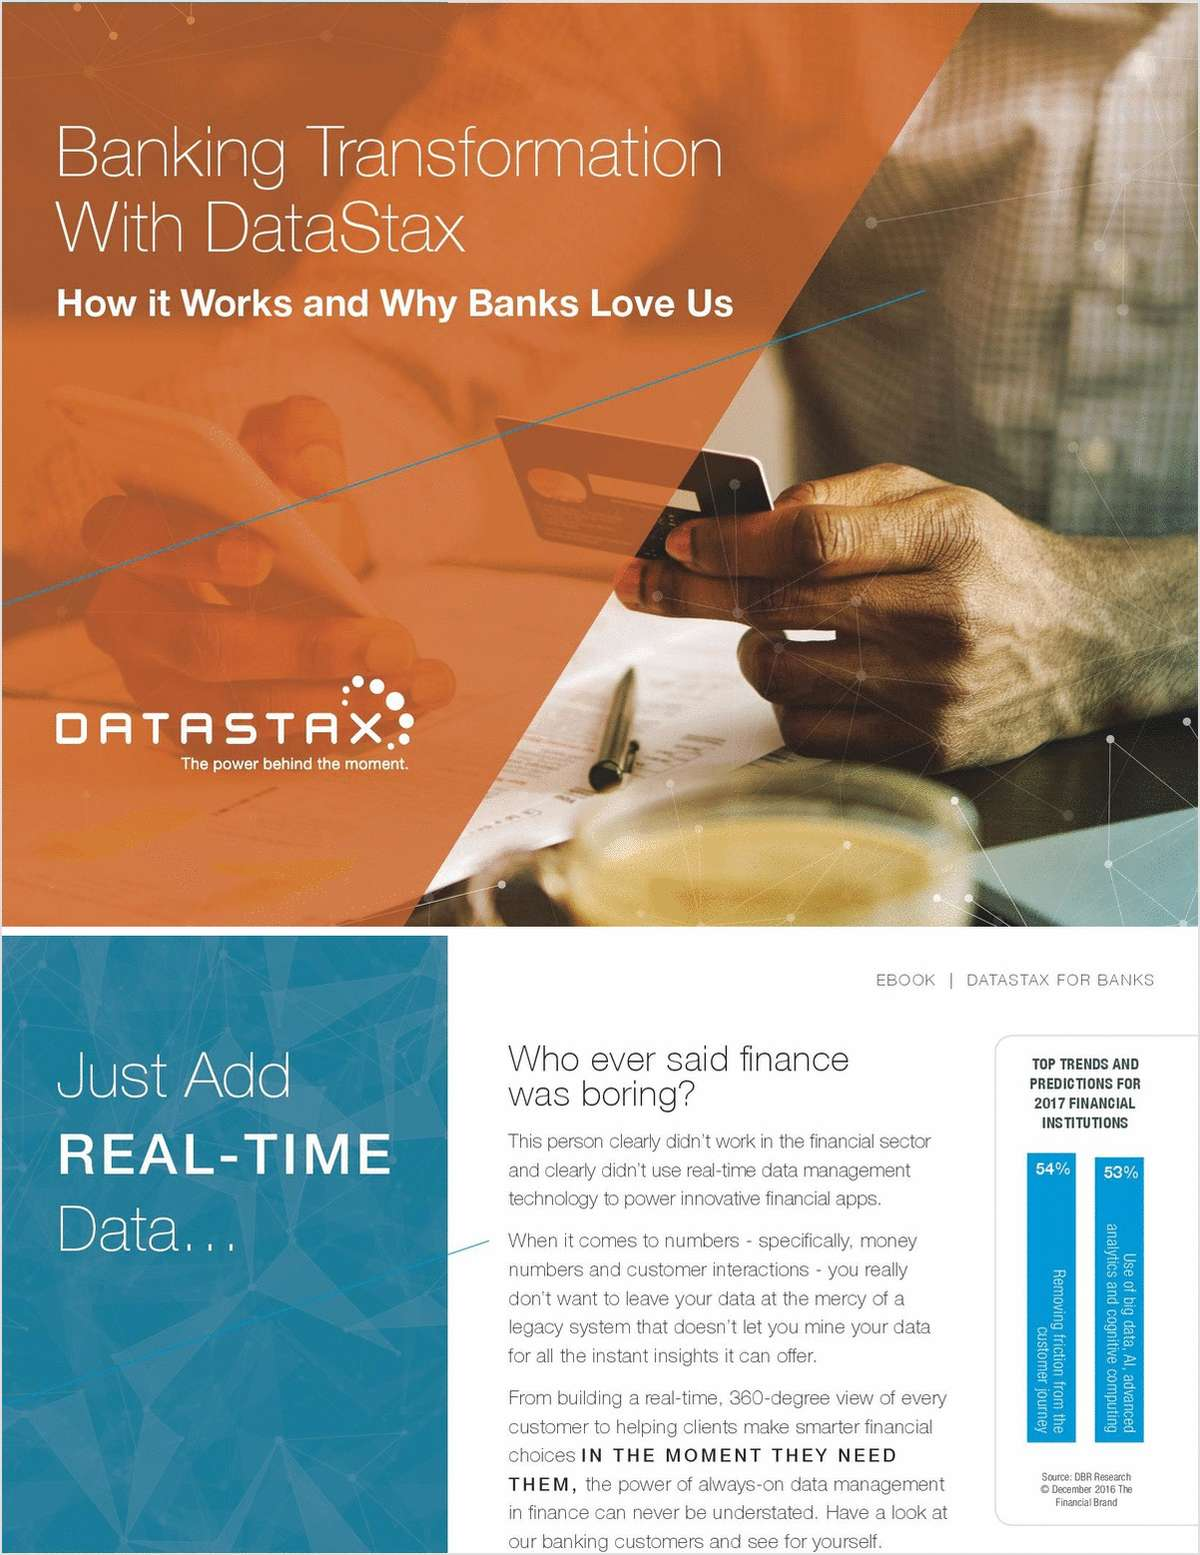 Banking Transformation with DataStax - How it Works & Why Banks Love Us